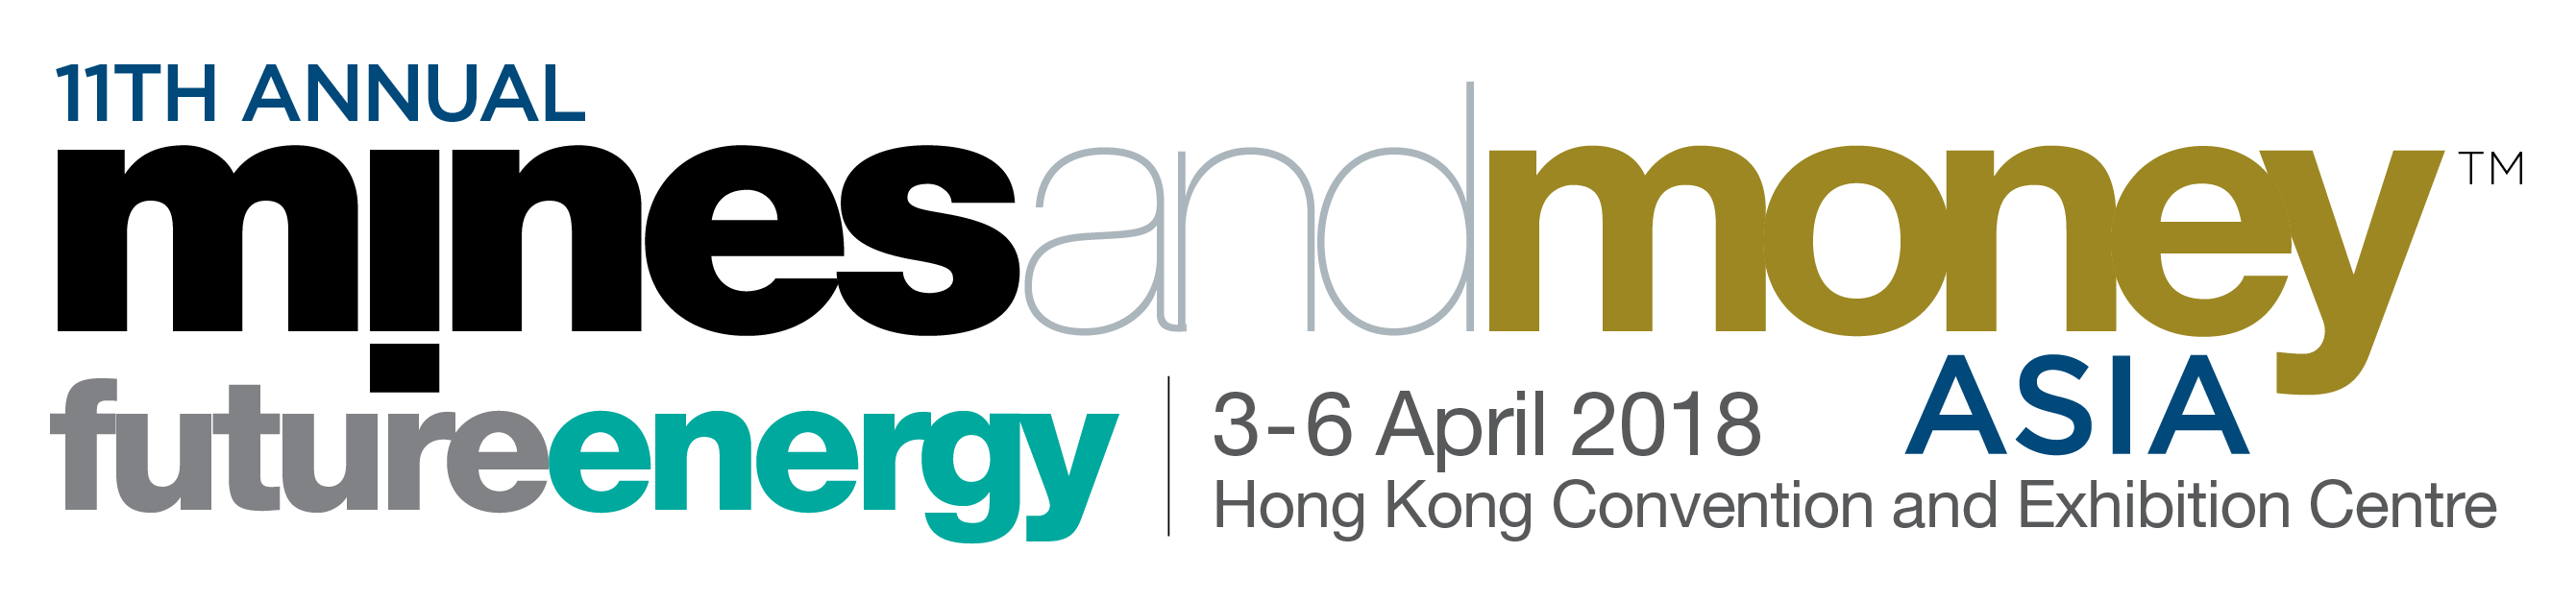 Mines and Money Asia 2018